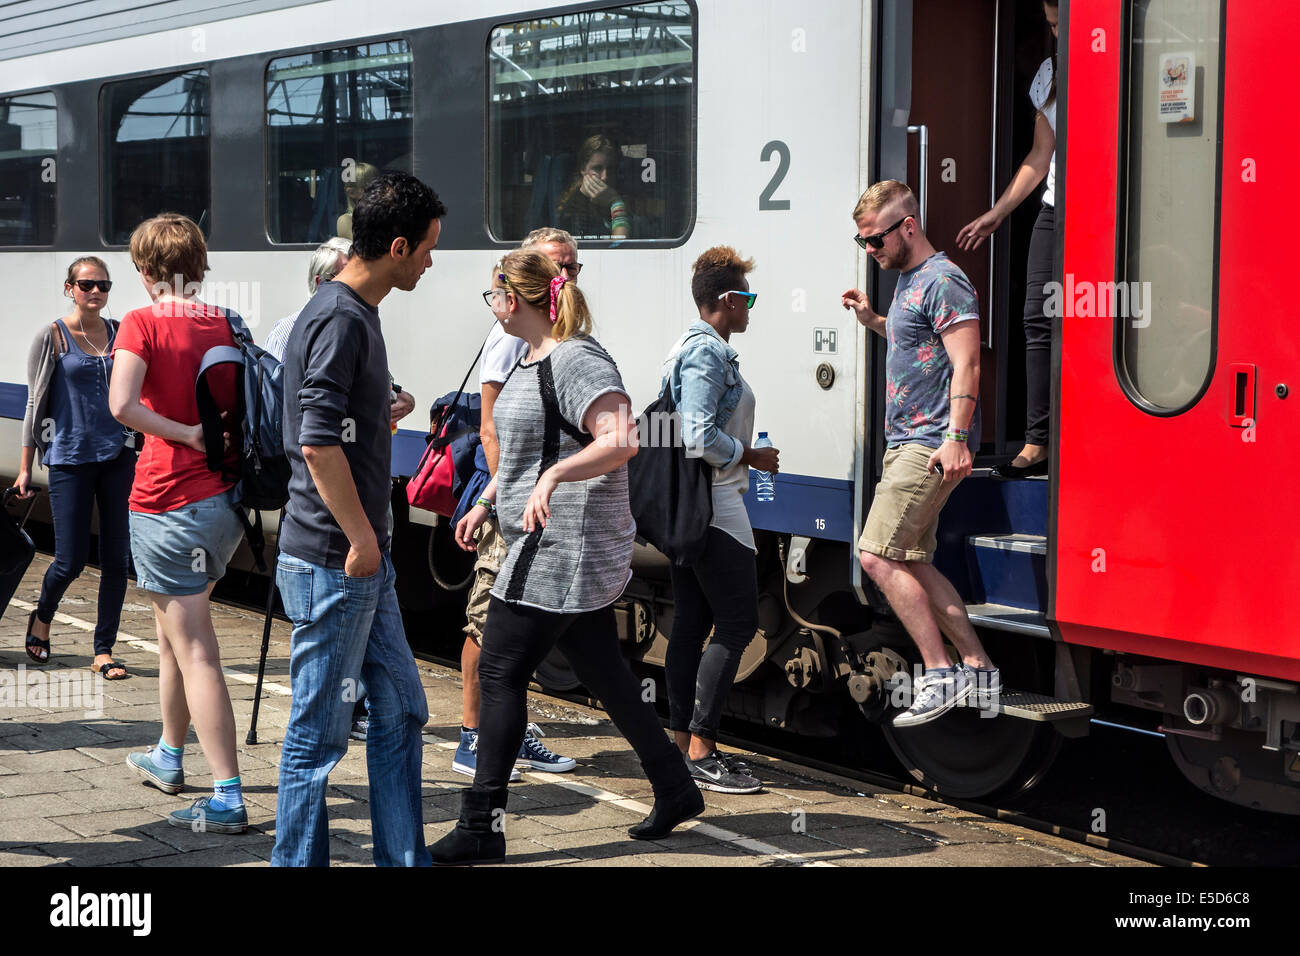 Passengers and commuters boarding passenger train on platform in railroad station - Stock Image